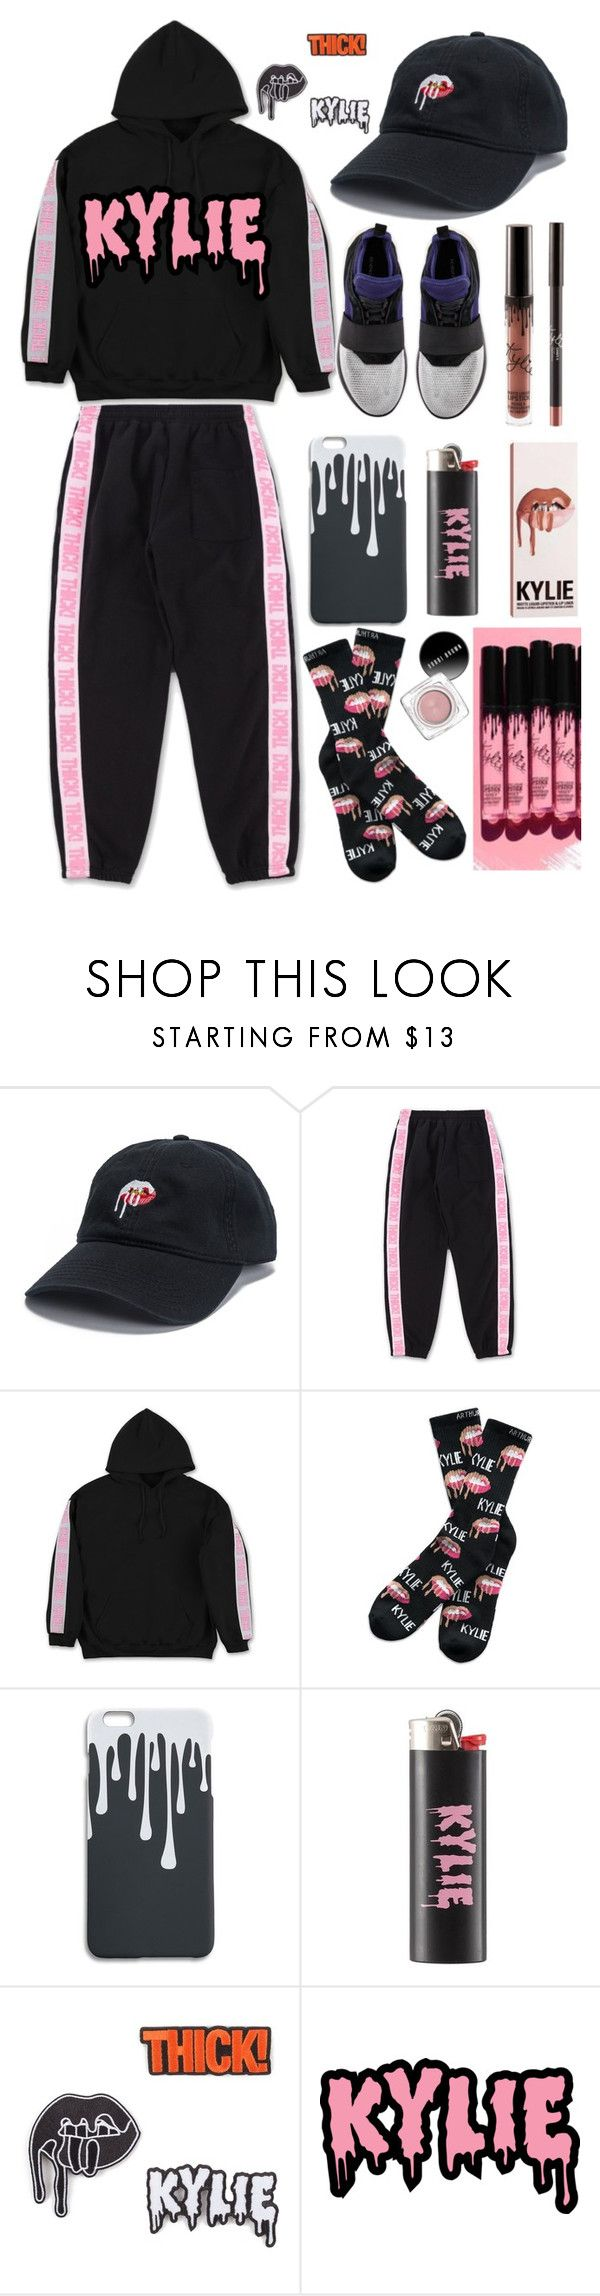 """""""kylie jenner"""" by faesadanparkaia ❤ liked on Polyvore featuring Arthur George, KRISVANASSCHE, Kendall + Kylie and Kylie Cosmetics"""